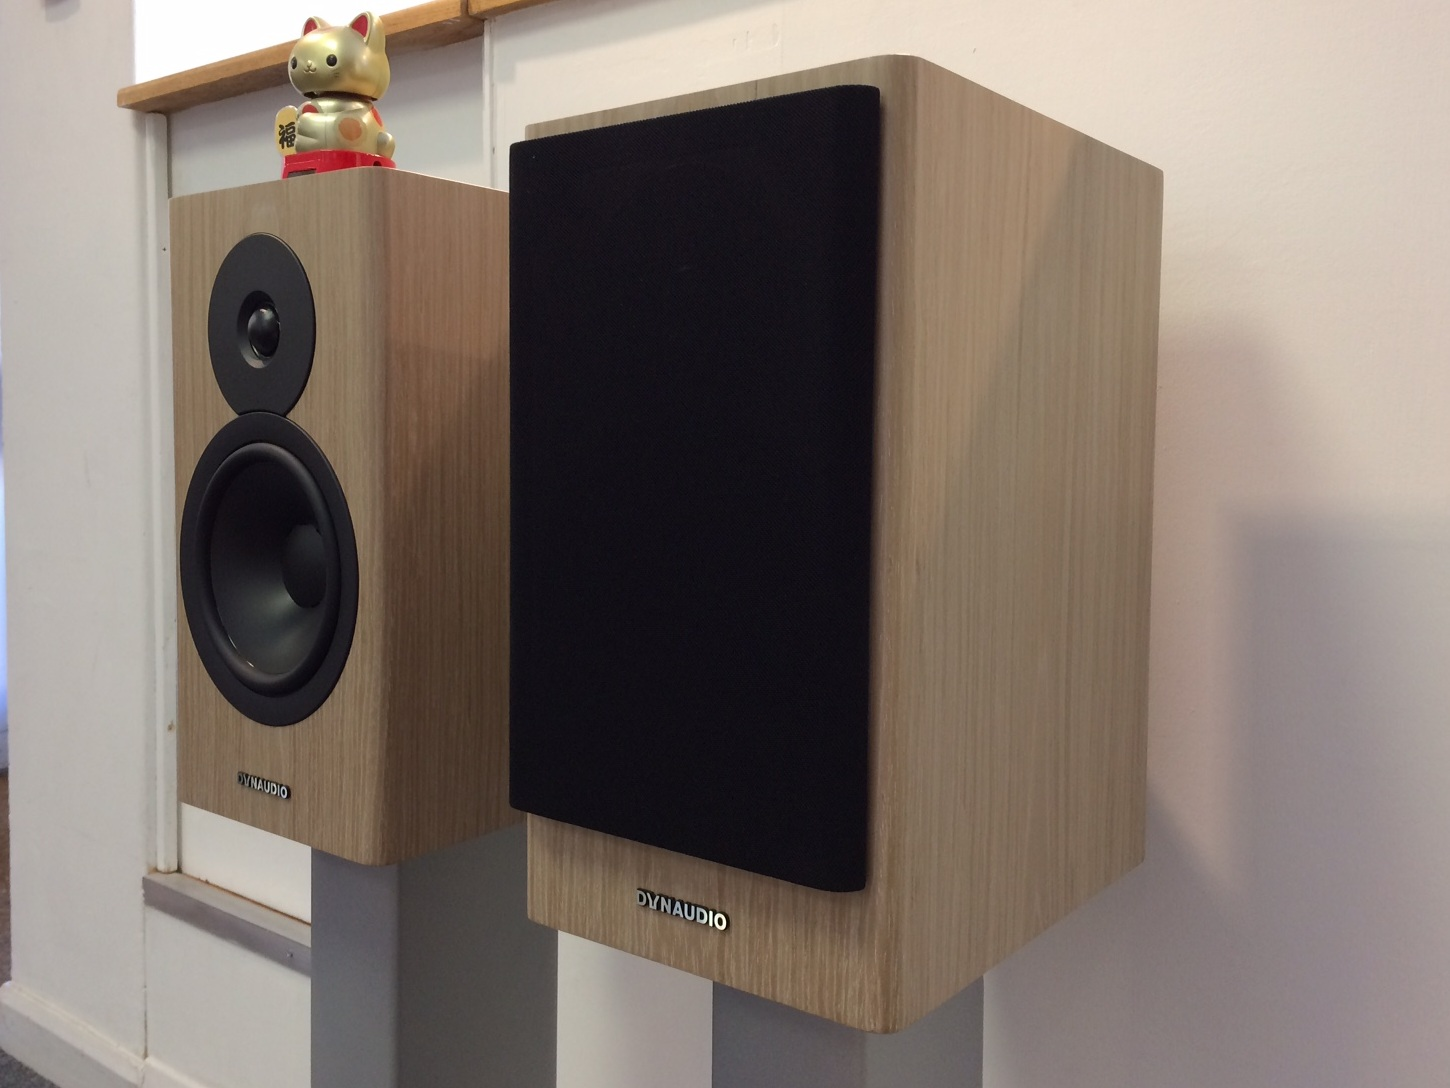 Dynaudio Evoke 20. Blonde Wood